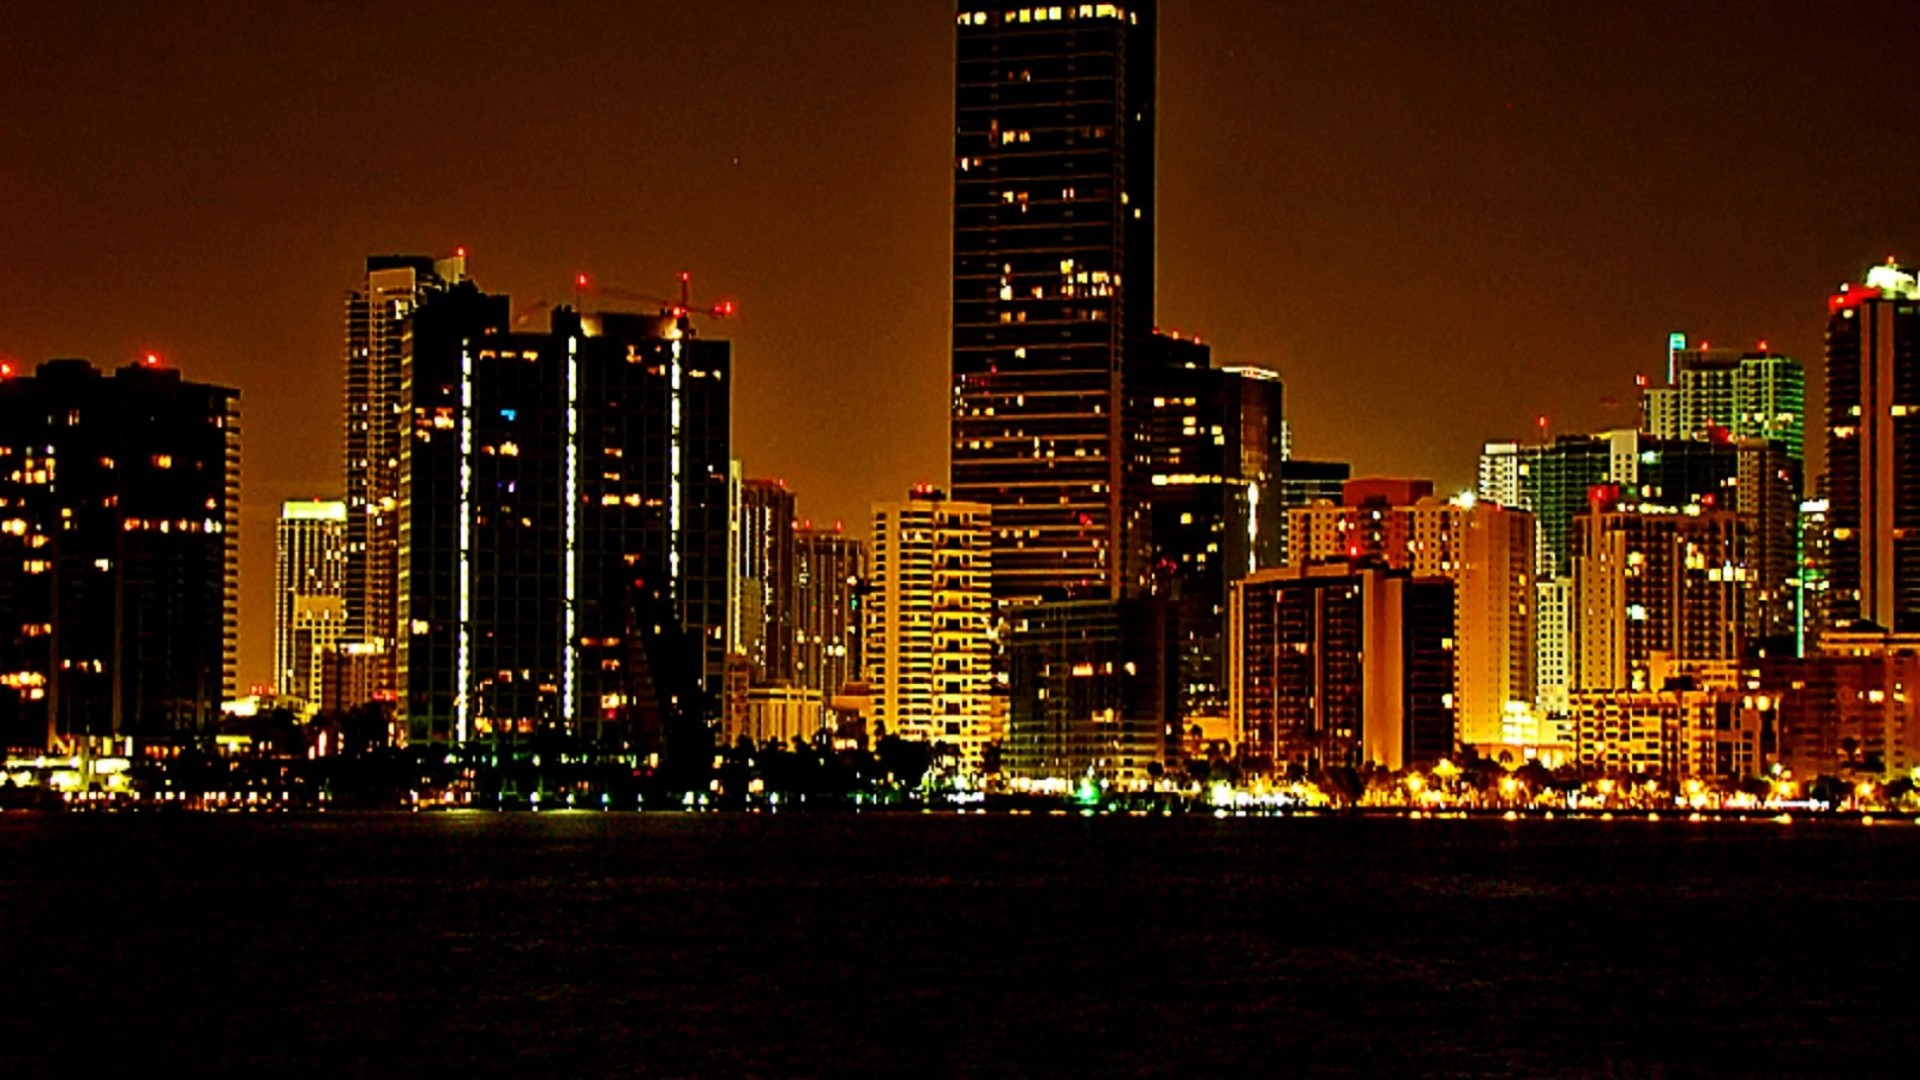 miami beach night hd wallpaper | hd latest wallpapers